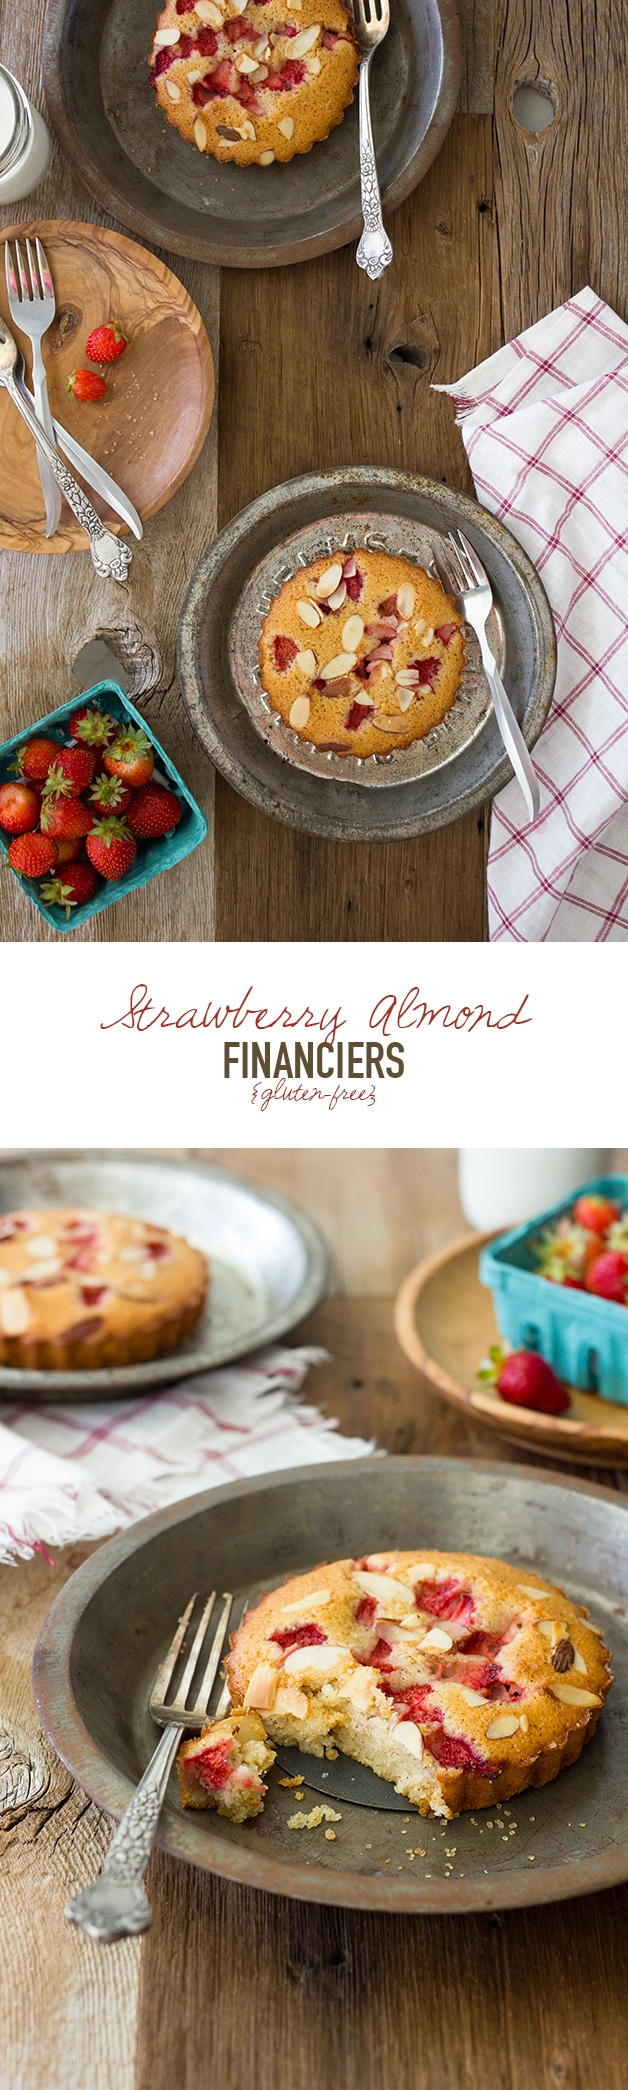 Strawberry Almond Financiers {gluten-free}| www.brighteyedbaker.com